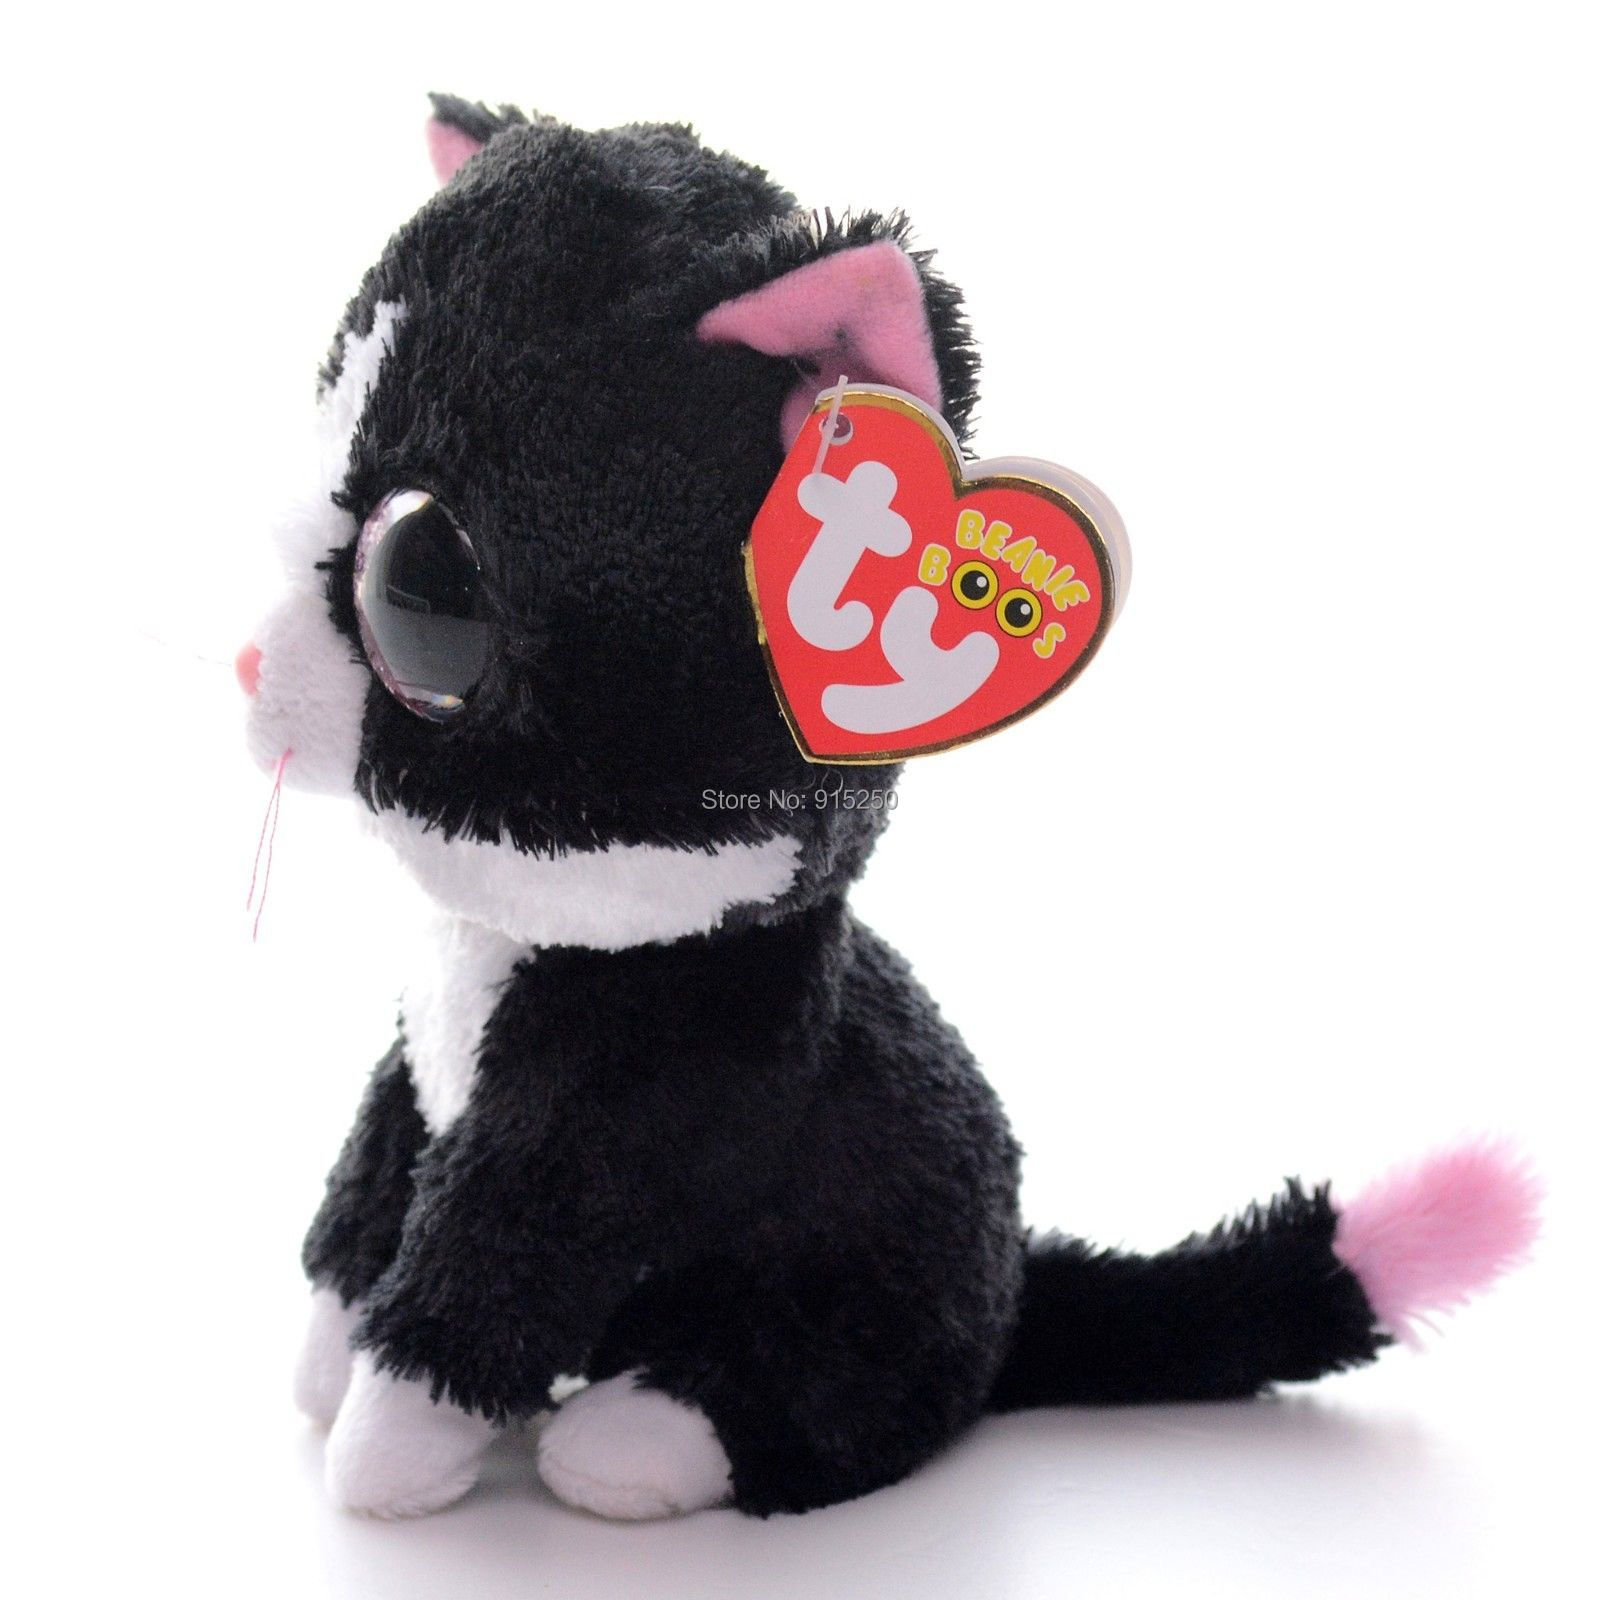 Cute 5 Original Ty Pepper Black Cat Plush Toys Stuffed Animals